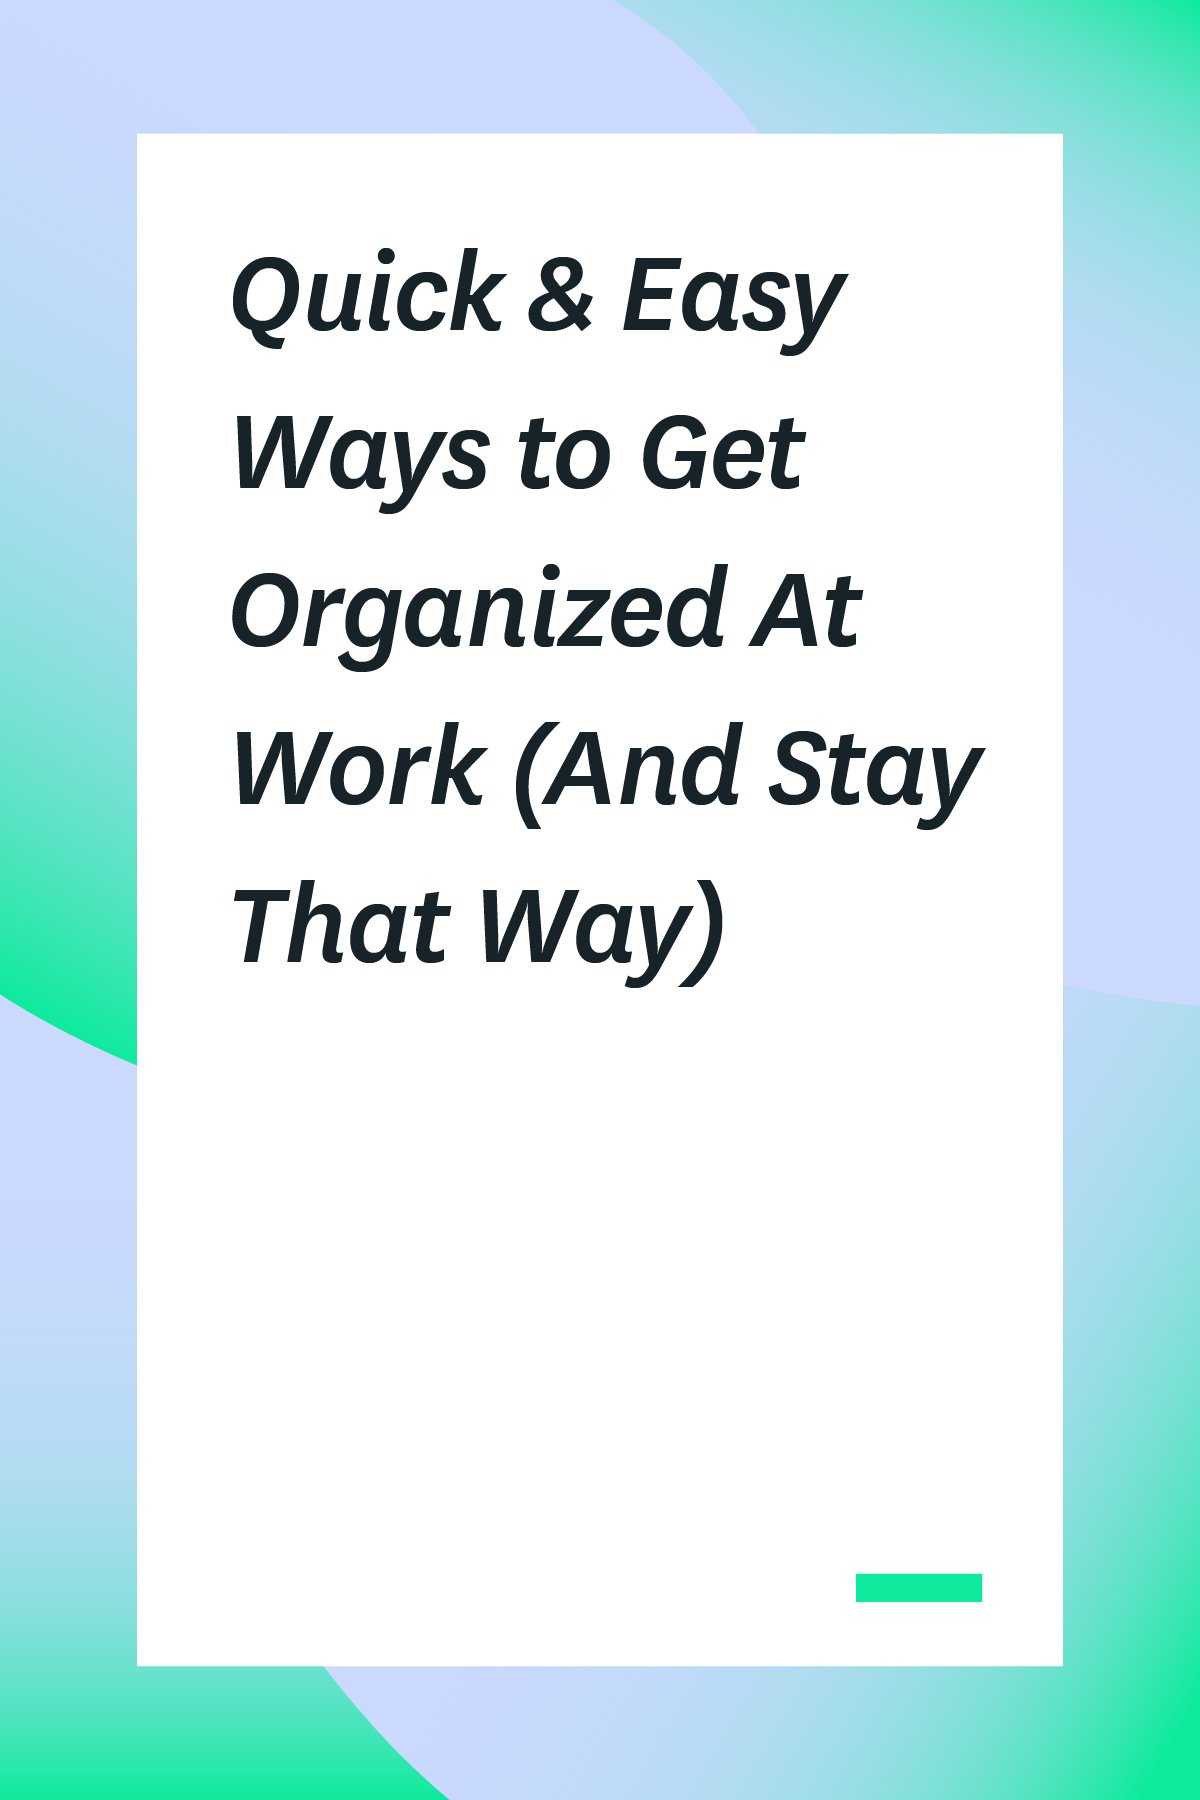 Getting organized at work has many benefits: improved productivity, professionalism, and job satisfaction being a few. Click through to read some tips on how to get organized at work. #organization #organized